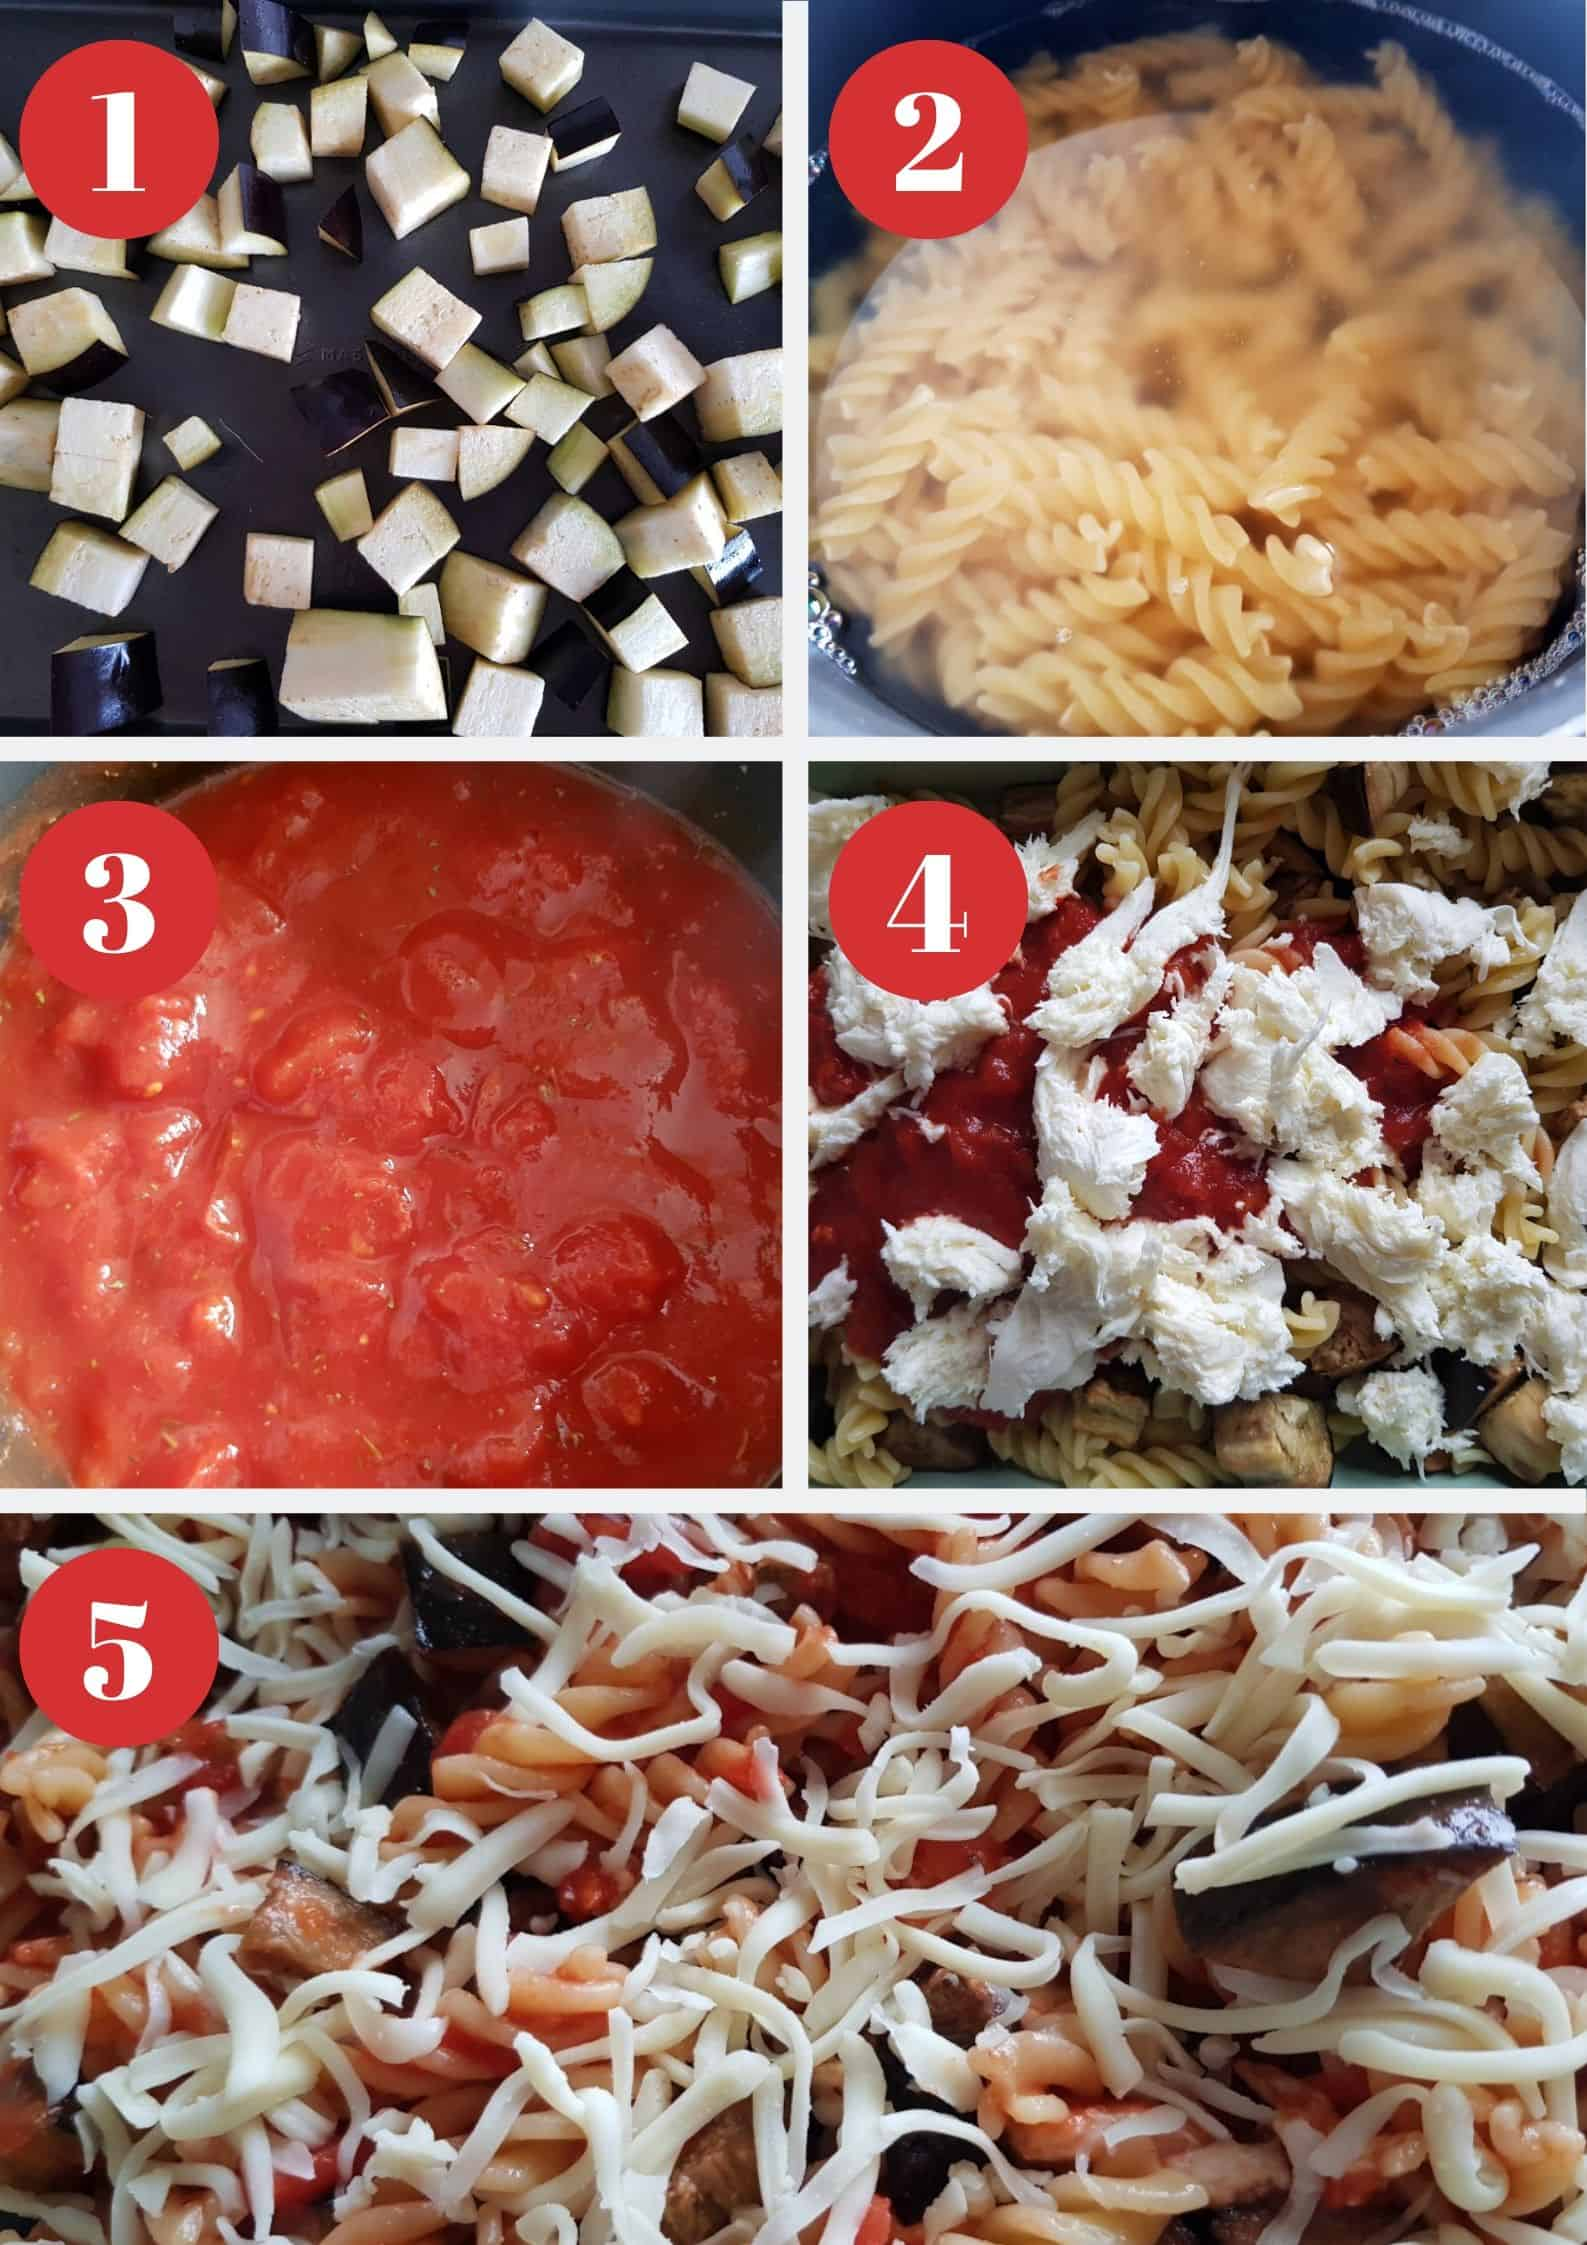 Infographic showing how to make eggplant and mozzarella pasta bake.